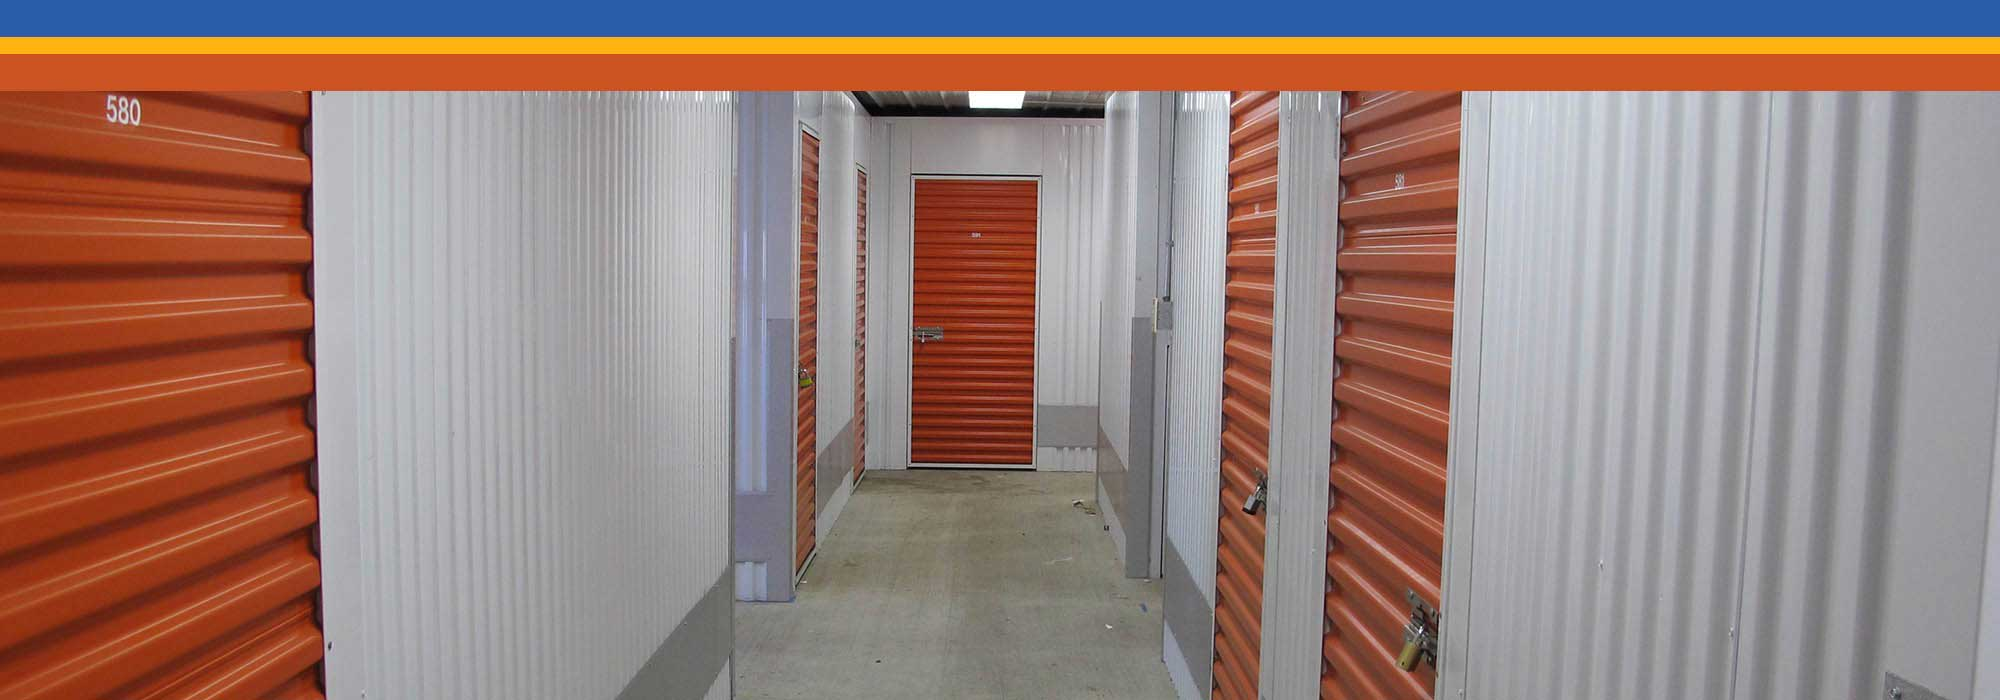 Self storage in St. Louis